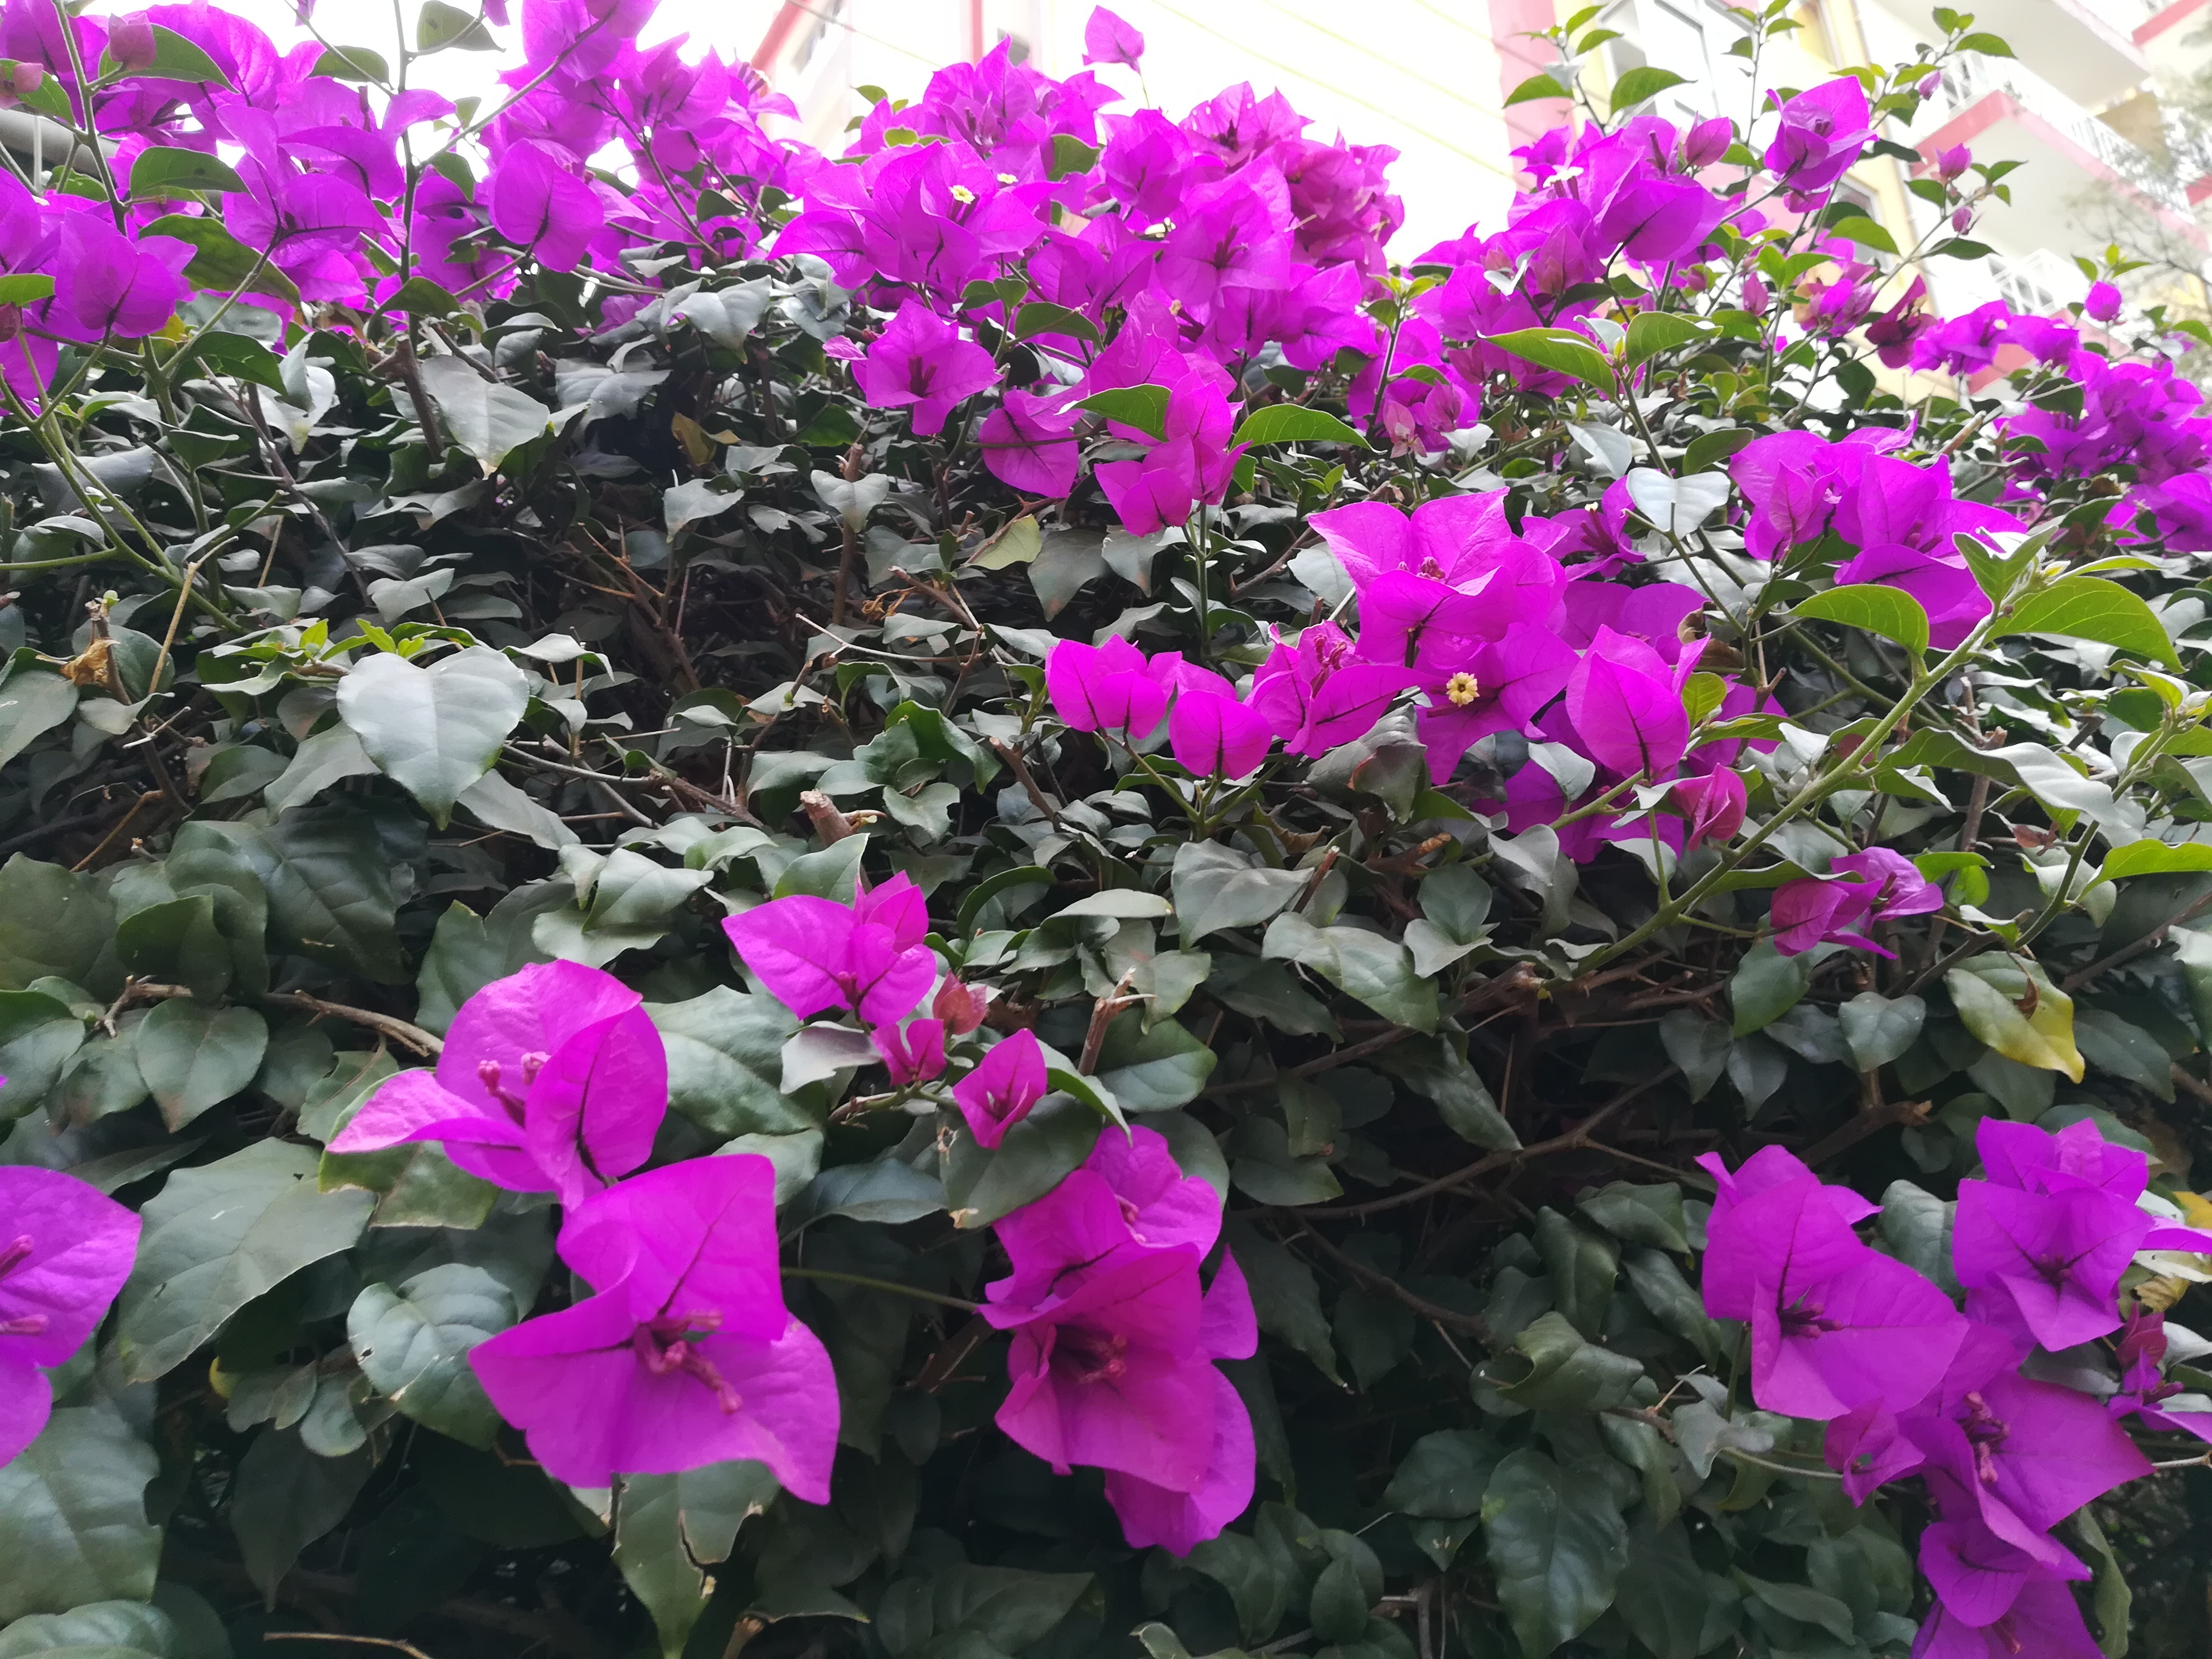 Mass of purple Bougainvillea flowers